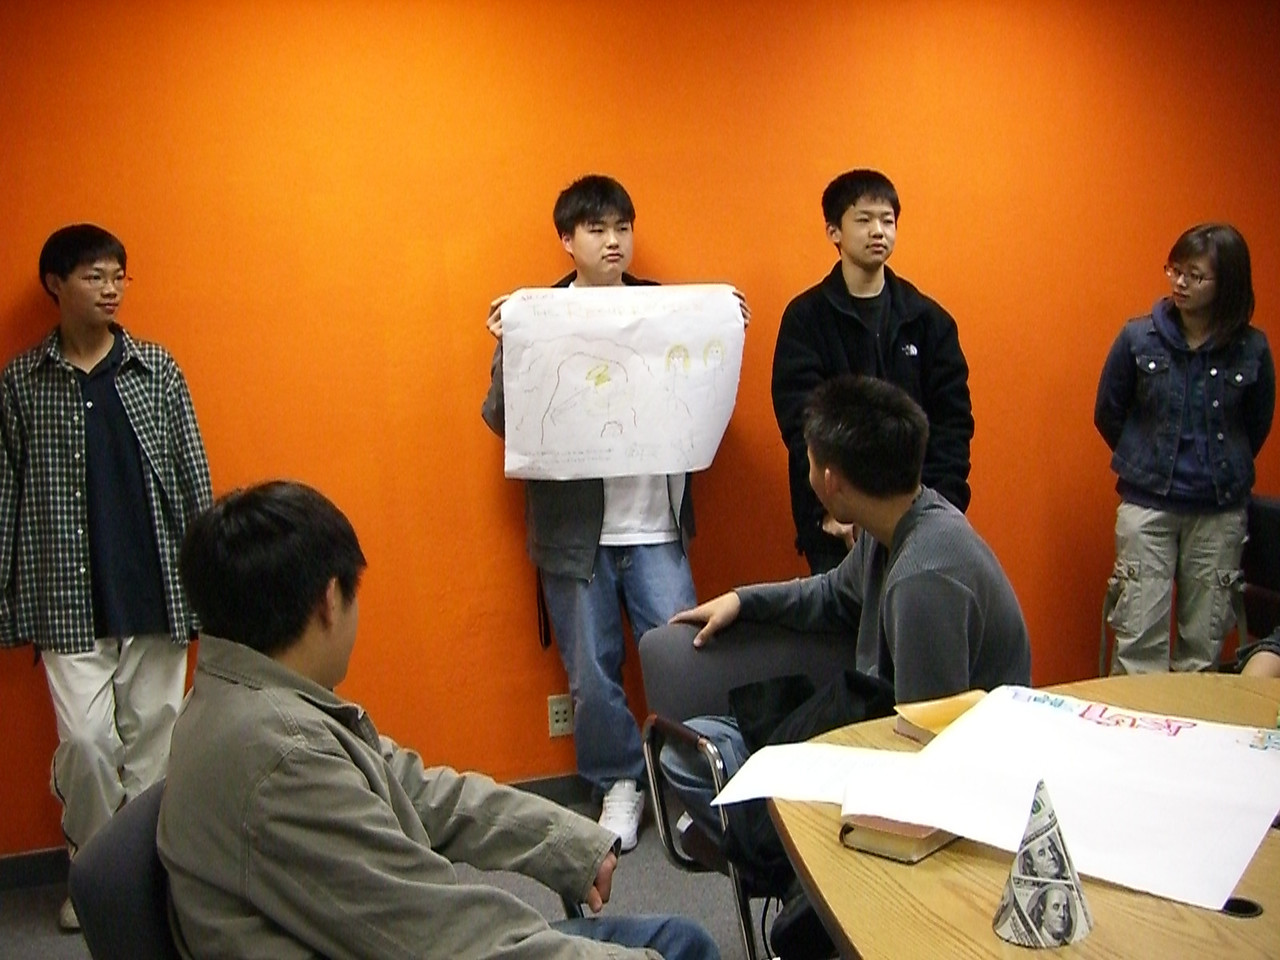 2006 03 17 Fri - Youth Group posters - Jeremy, Isaac Choi, Jay, & Soyeon Park 2